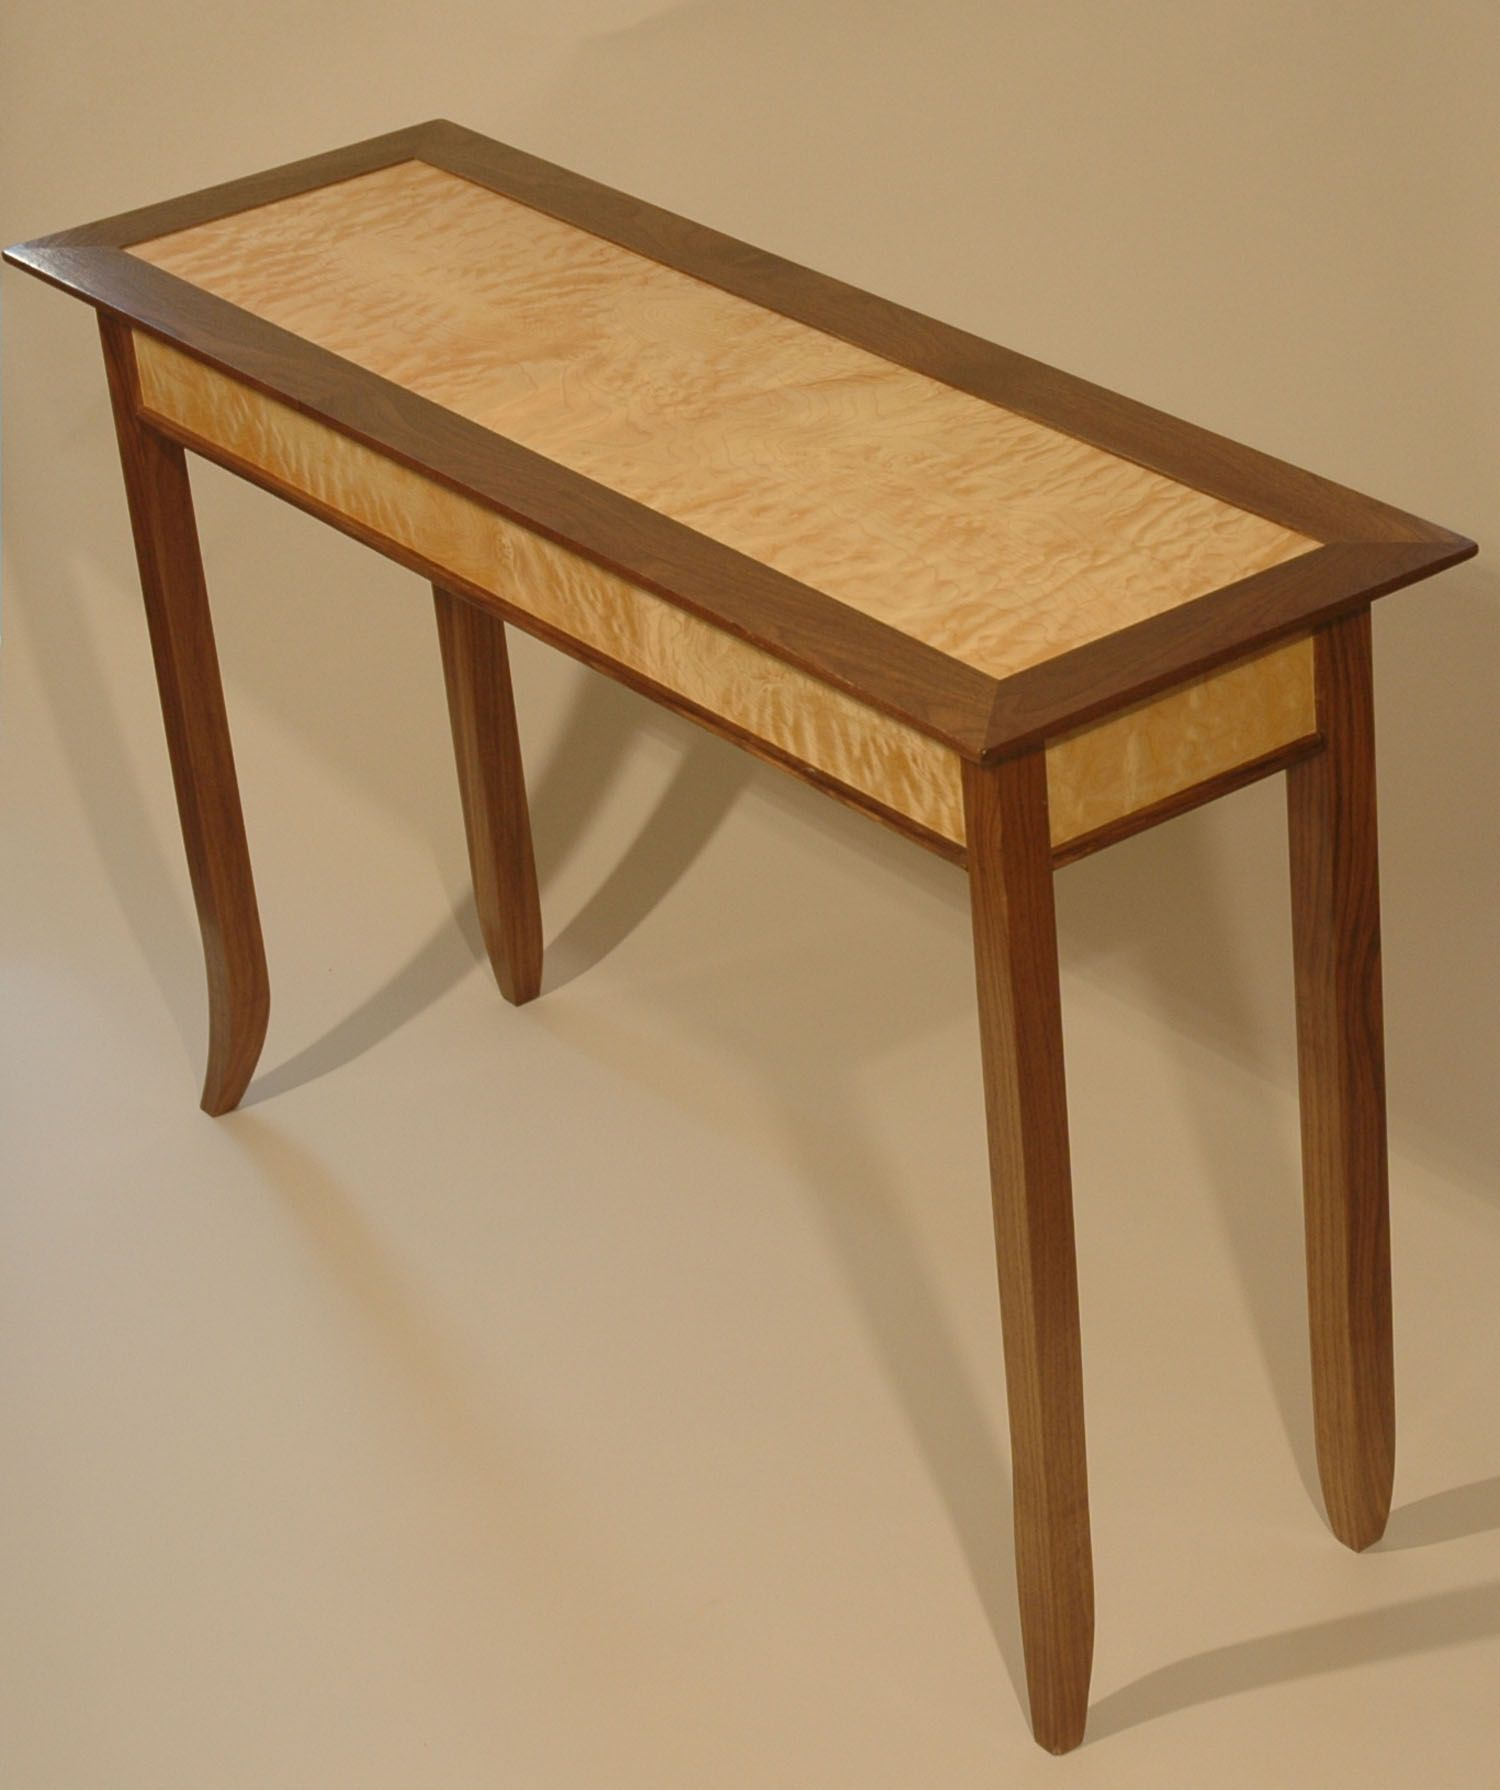 Sofa Tables Pinterest Beds Cheap Hall Table Google Search Timber